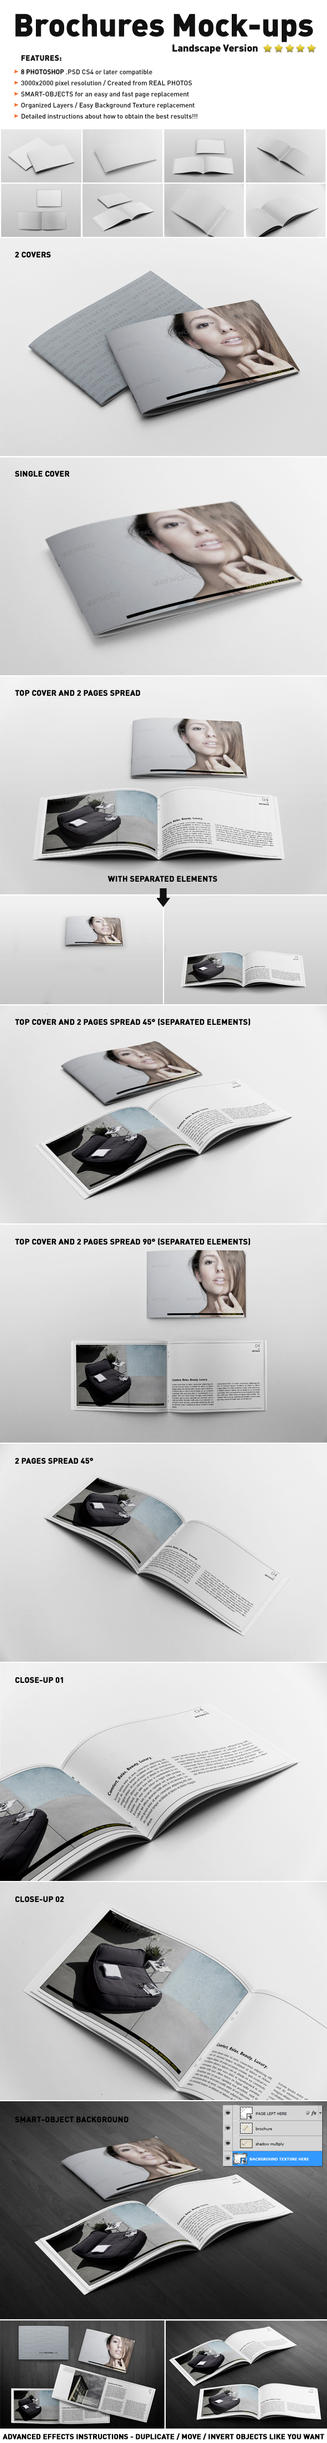 Photorealistic Landscape Brochure Mock-ups by andre2886